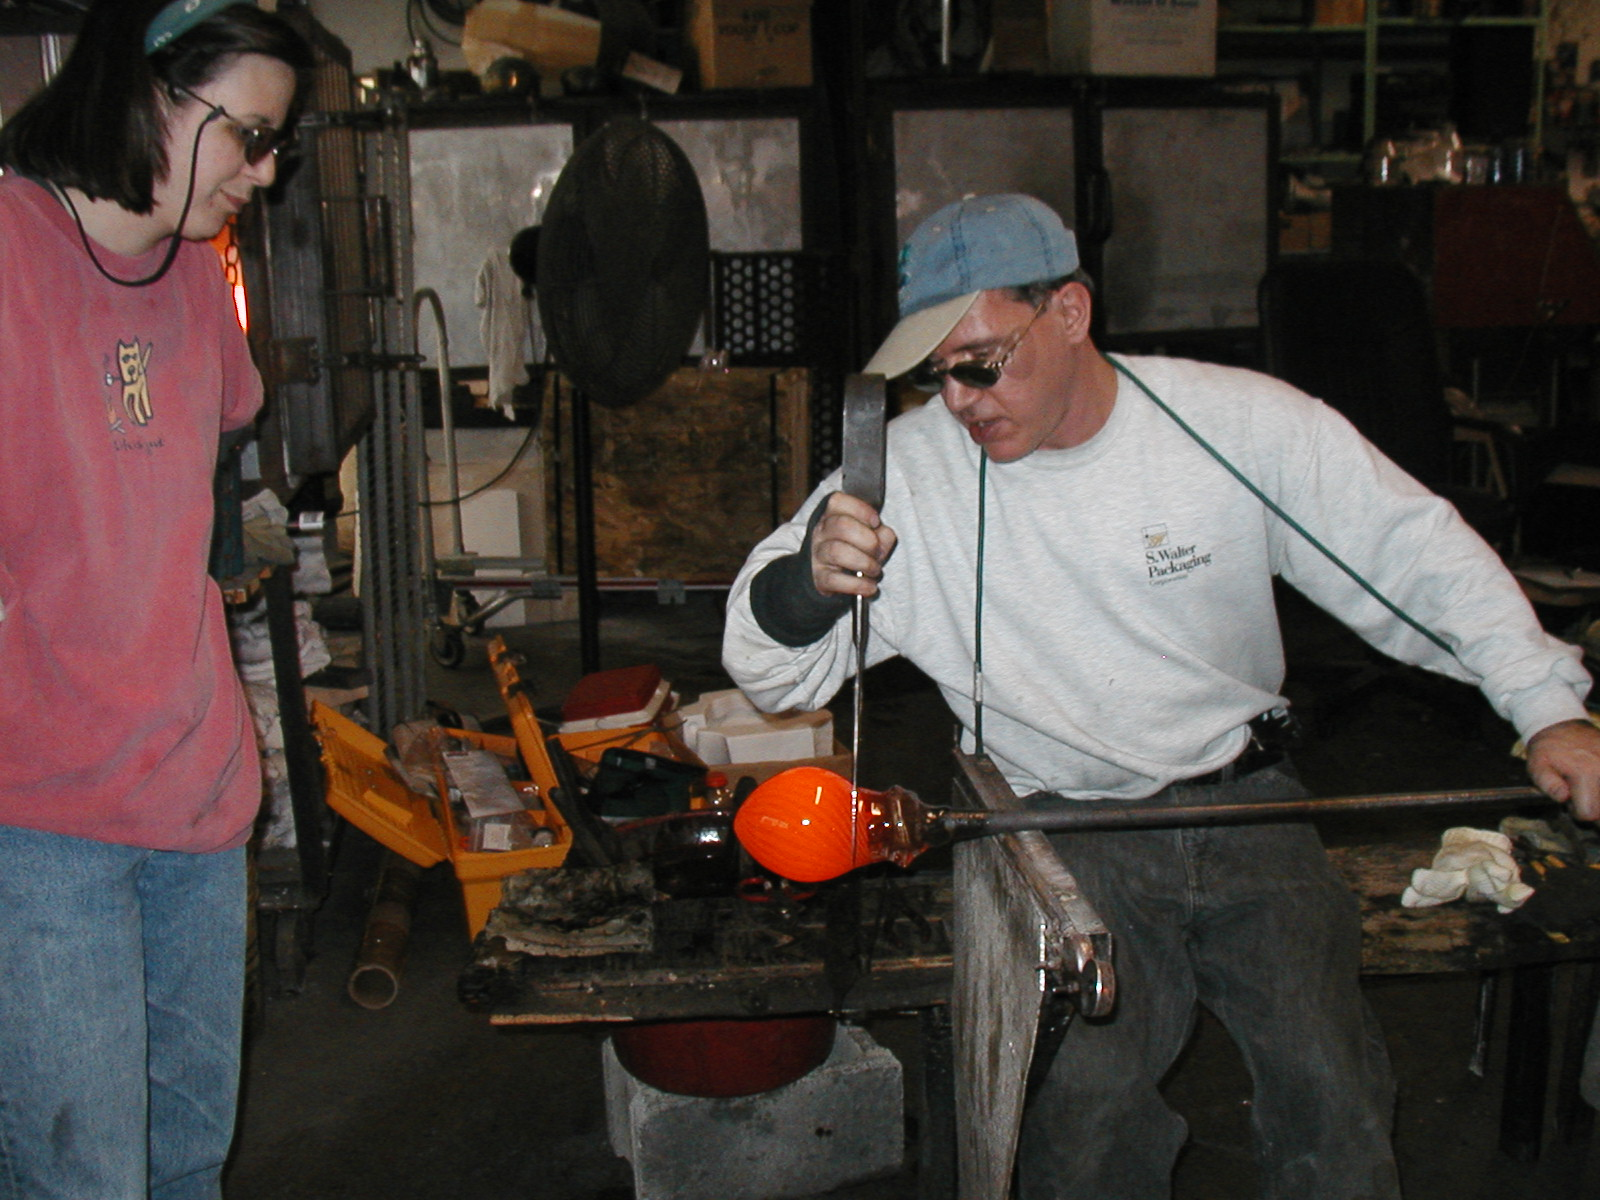 Glassblower.Info - Joel Bless Glasslight Glassblowing class January 18 2004 #096